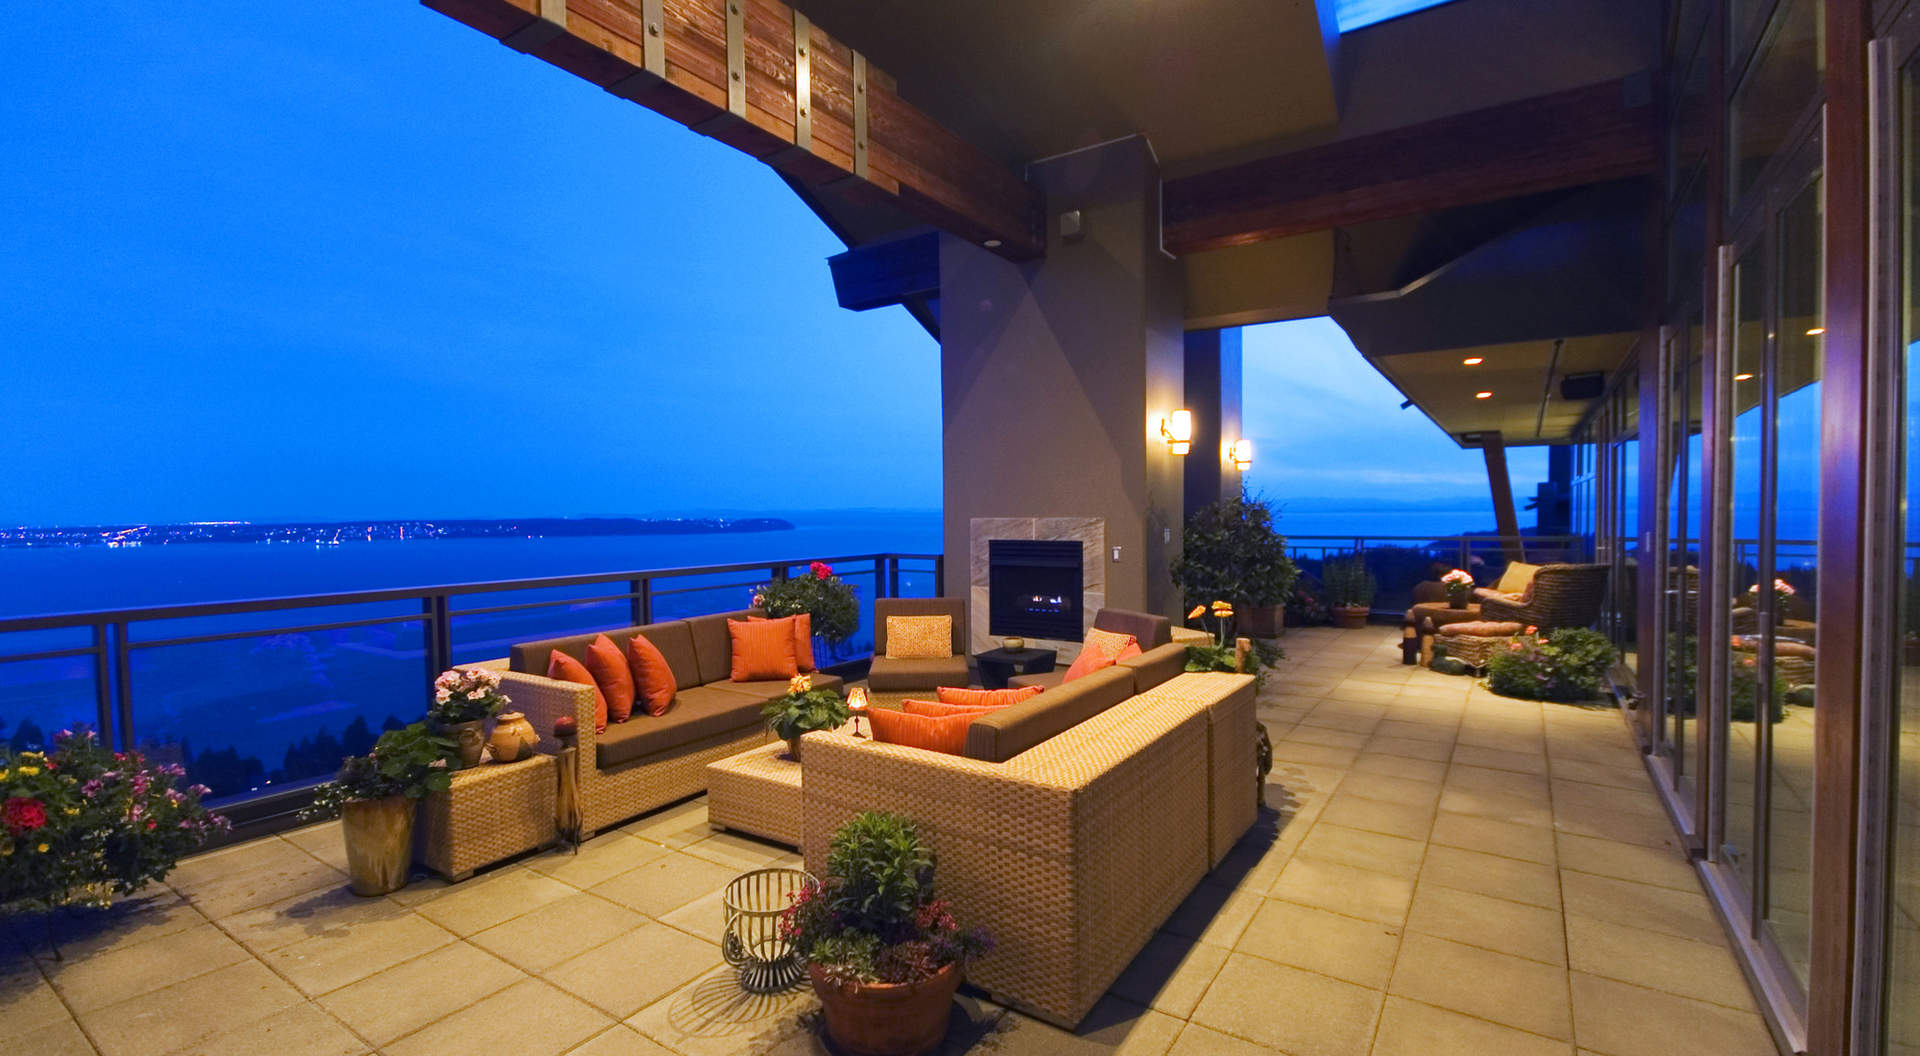 Covered Outdoor Terrace with Fireplace